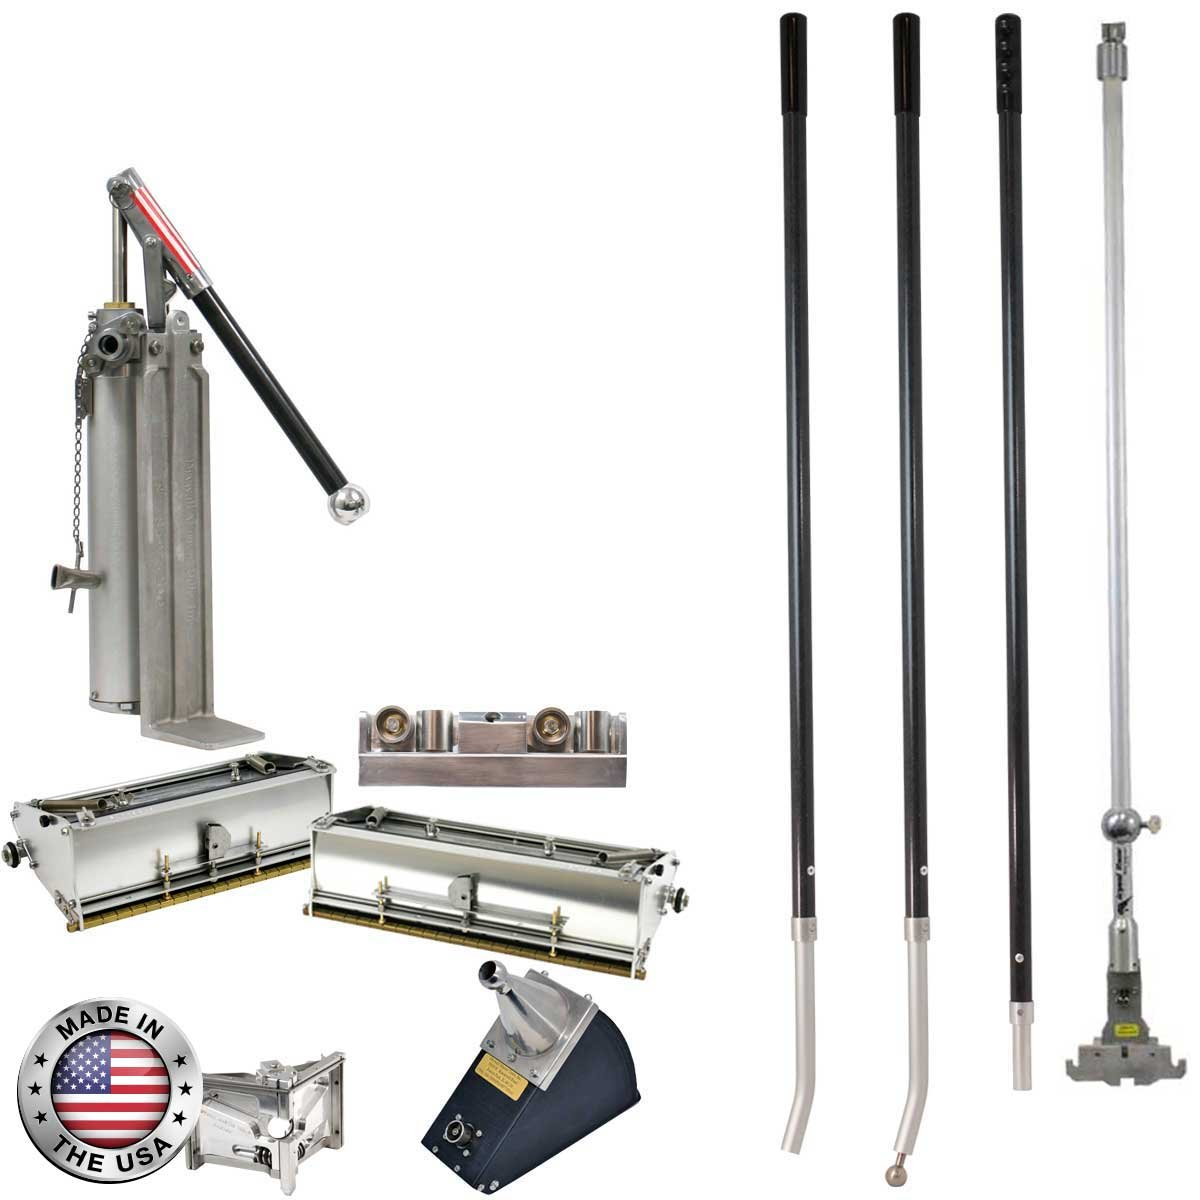 Drywall Master Professional Finishing Set - 10'' & 12'' Flat Boxes, Angle Box, Angle Head, Roller, Pump & Handles